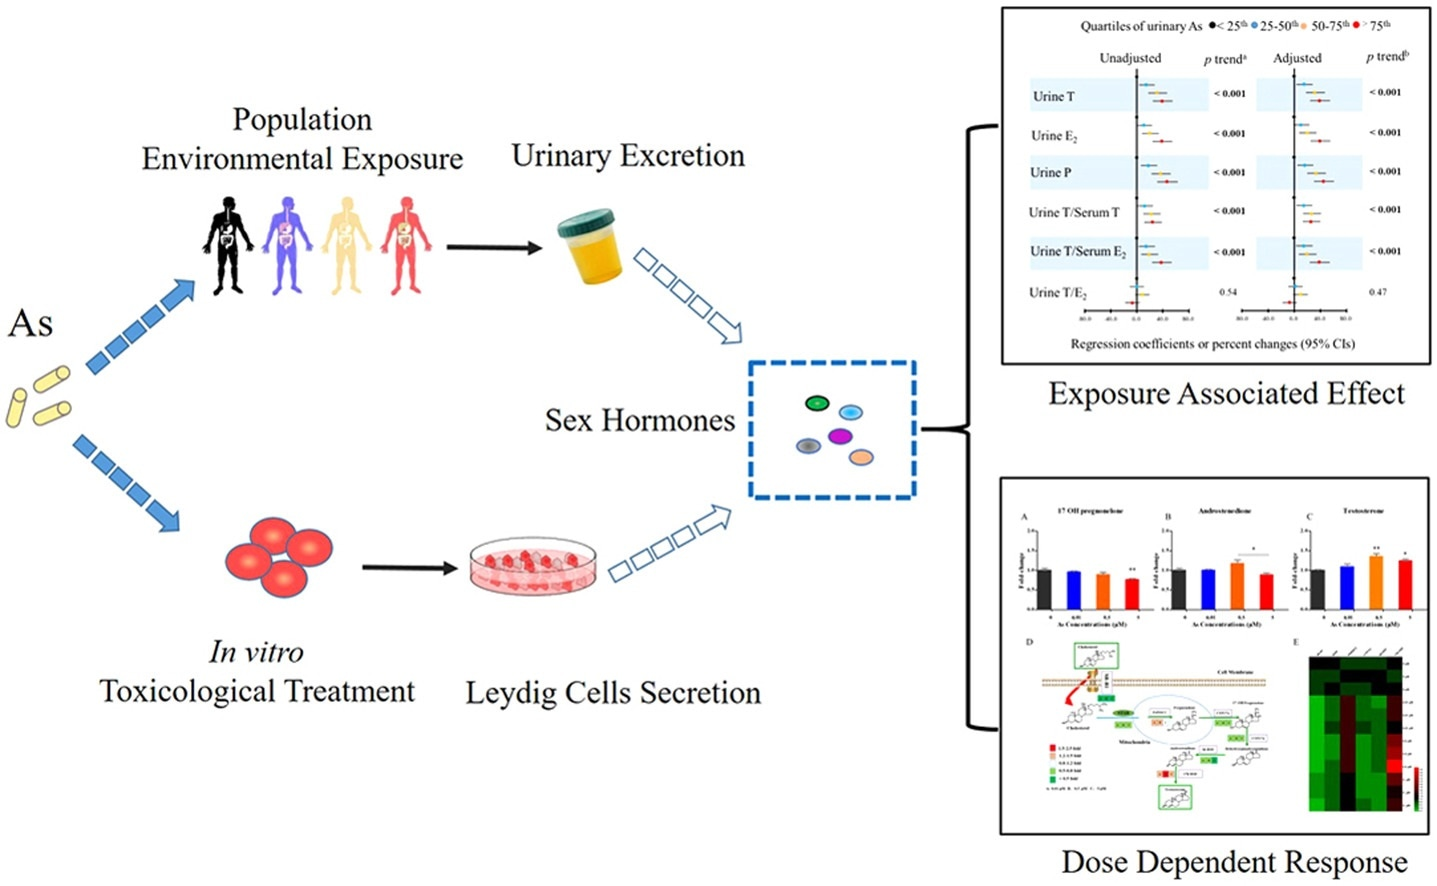 Study identifies new mode of male endocrine disruption due to environmental arsenic exposure